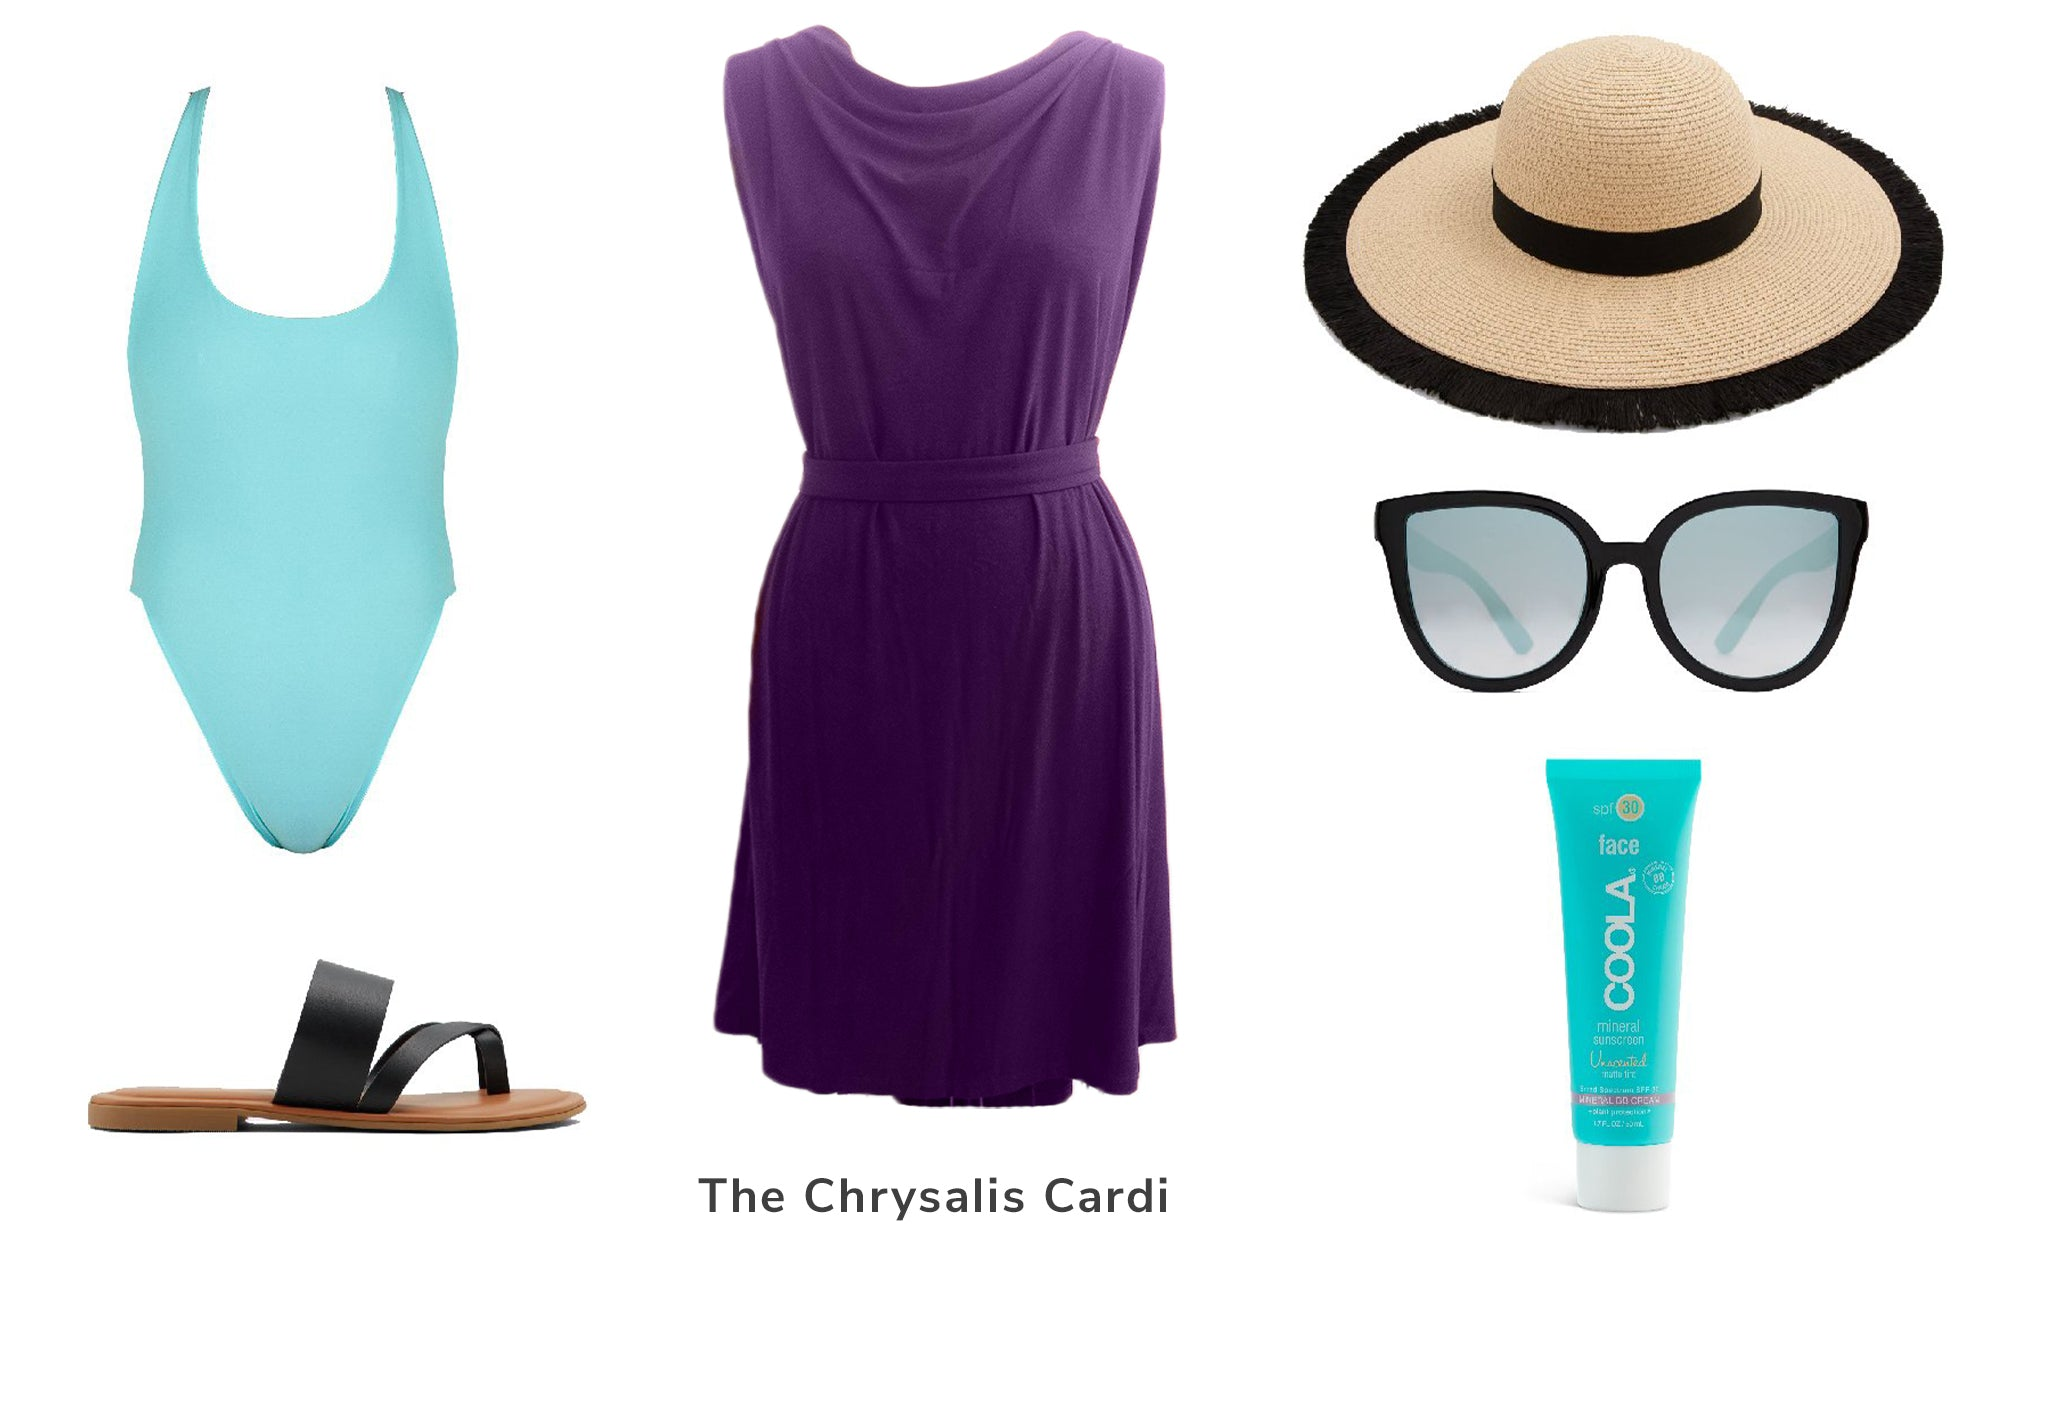 Cottage outfit, dress, swimsuit, sunglasses, hat, and sandals.